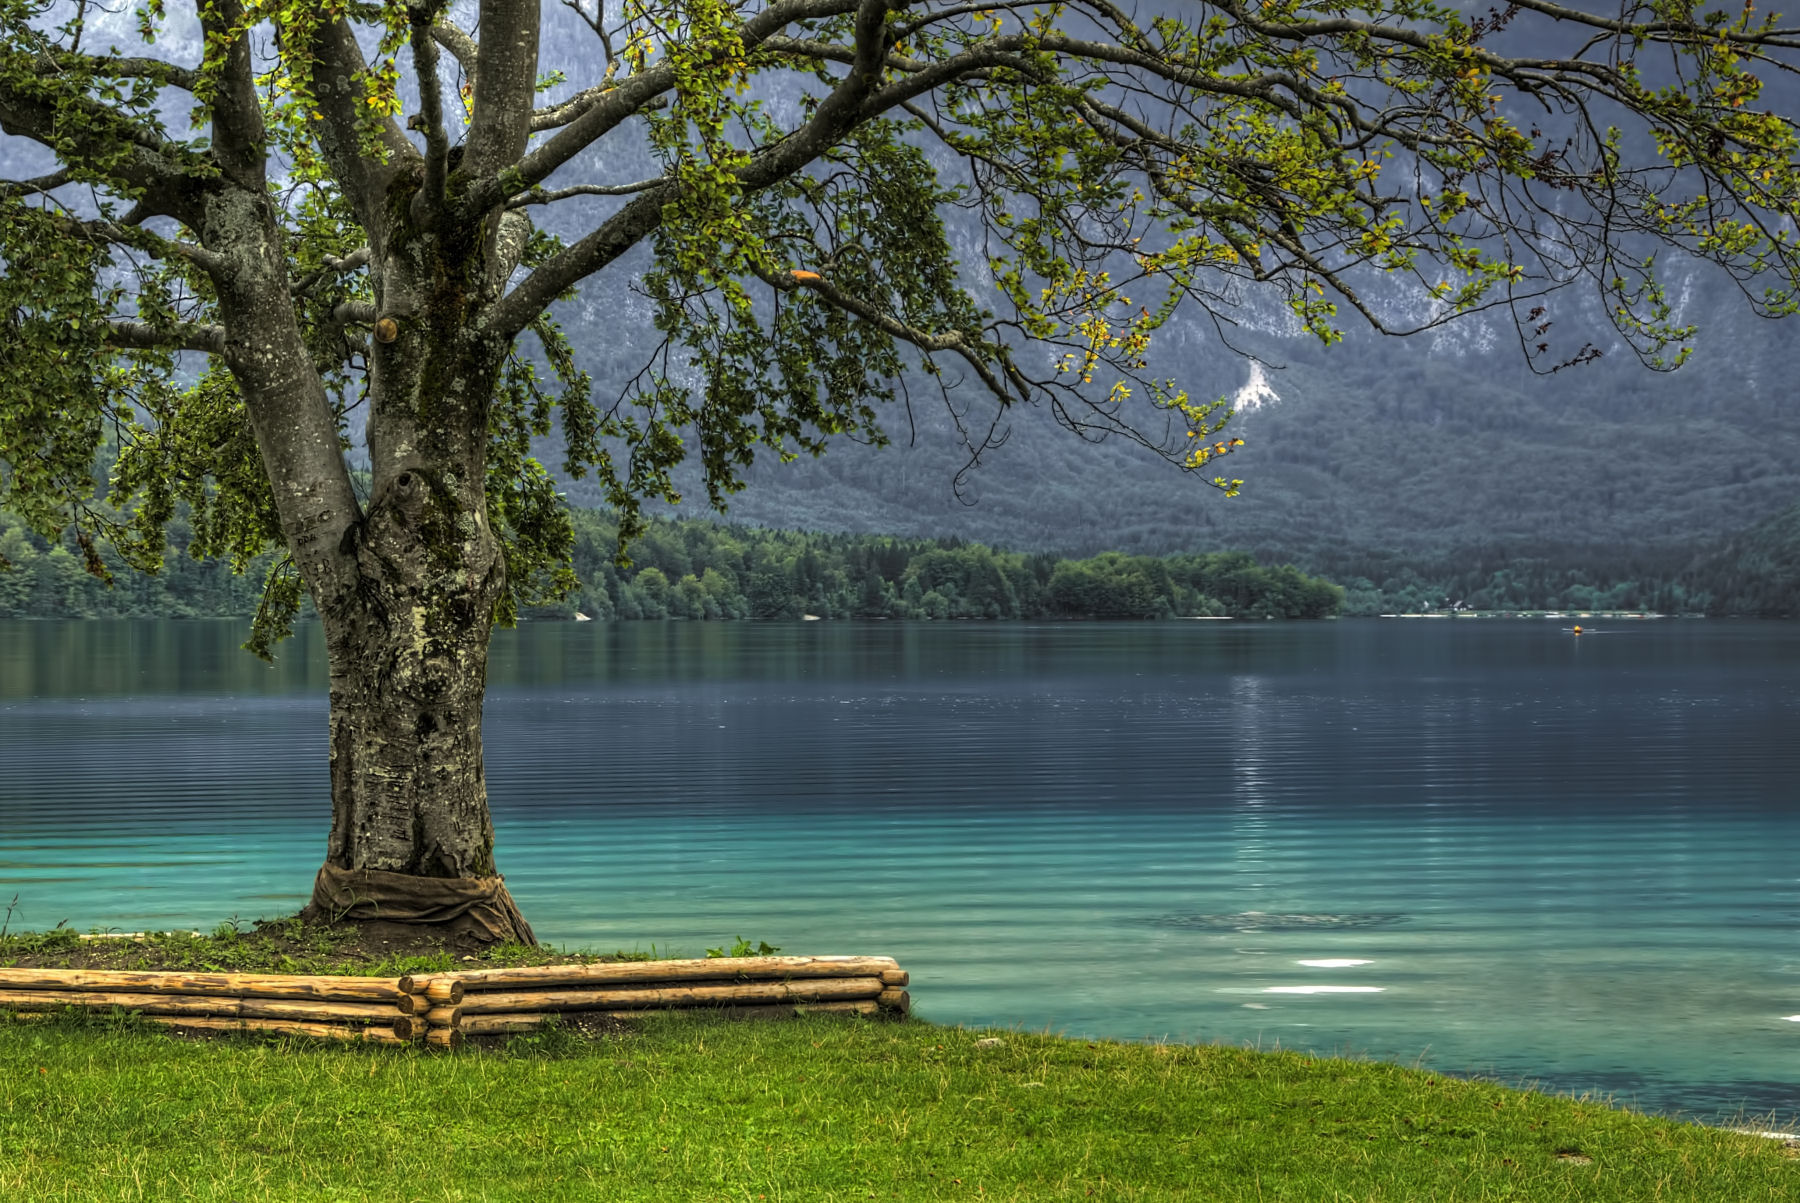 Another beautiful view on Lake Bohinj in Slovenia